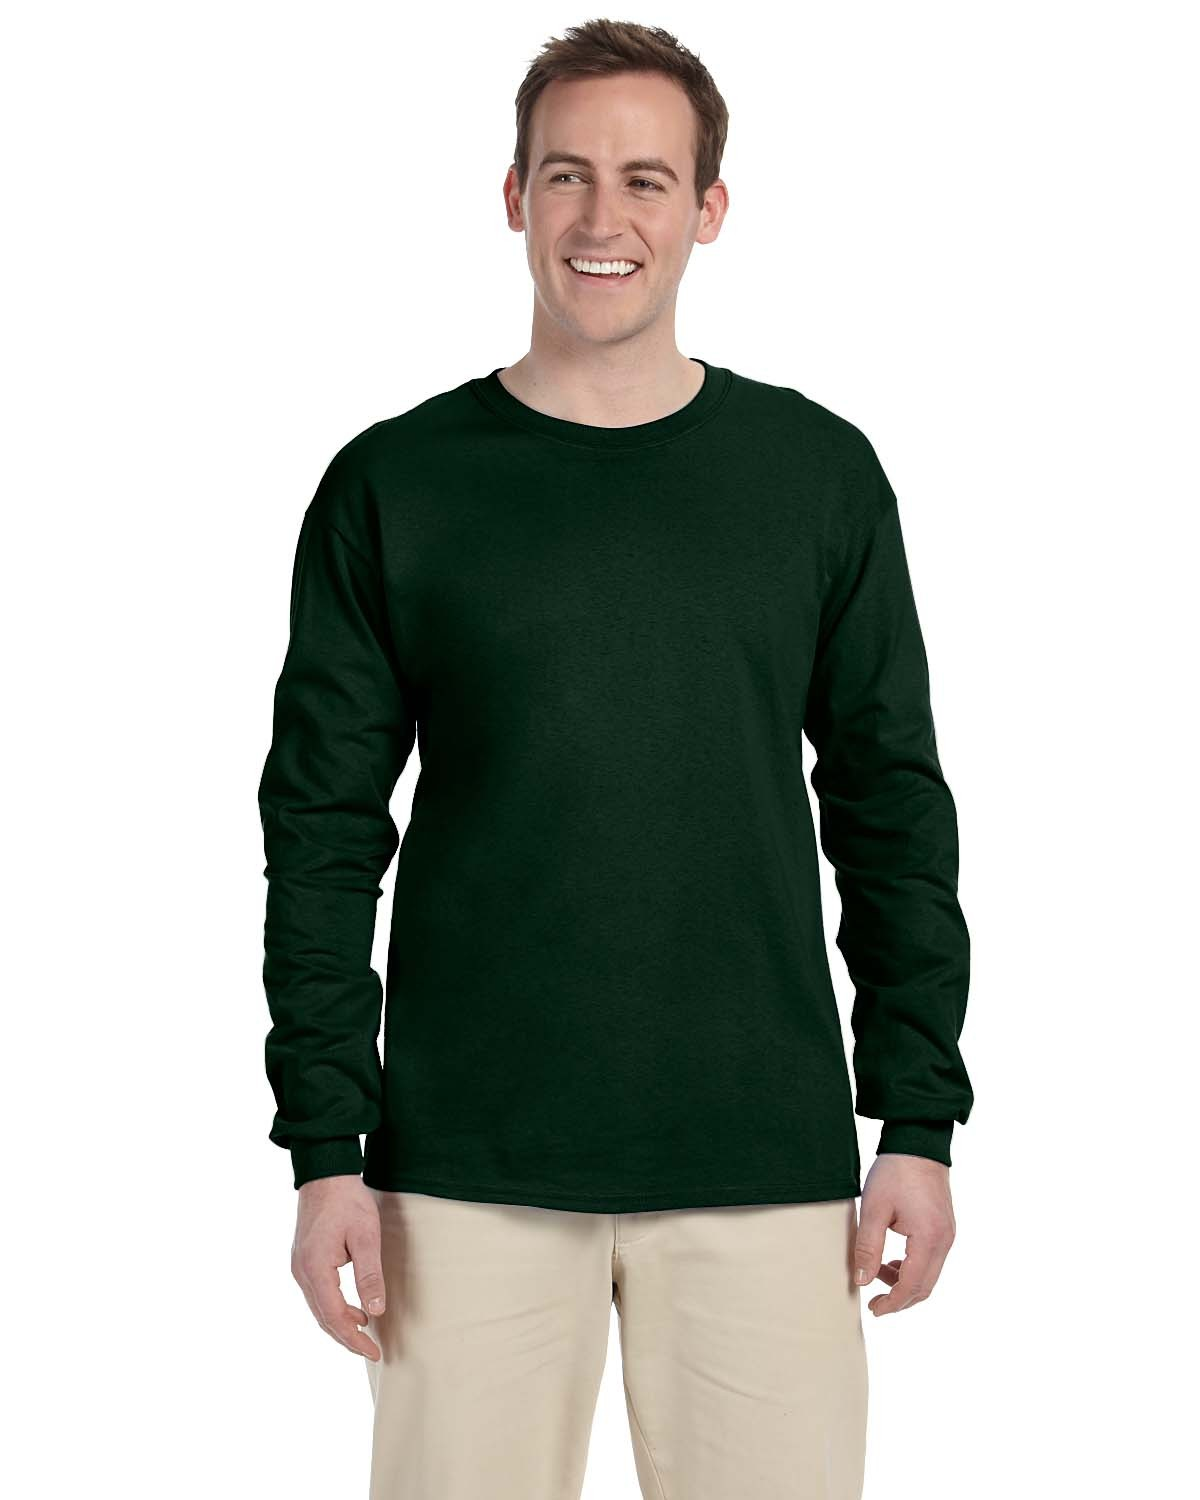 4930 Fruit of the Loom FOREST GREEN